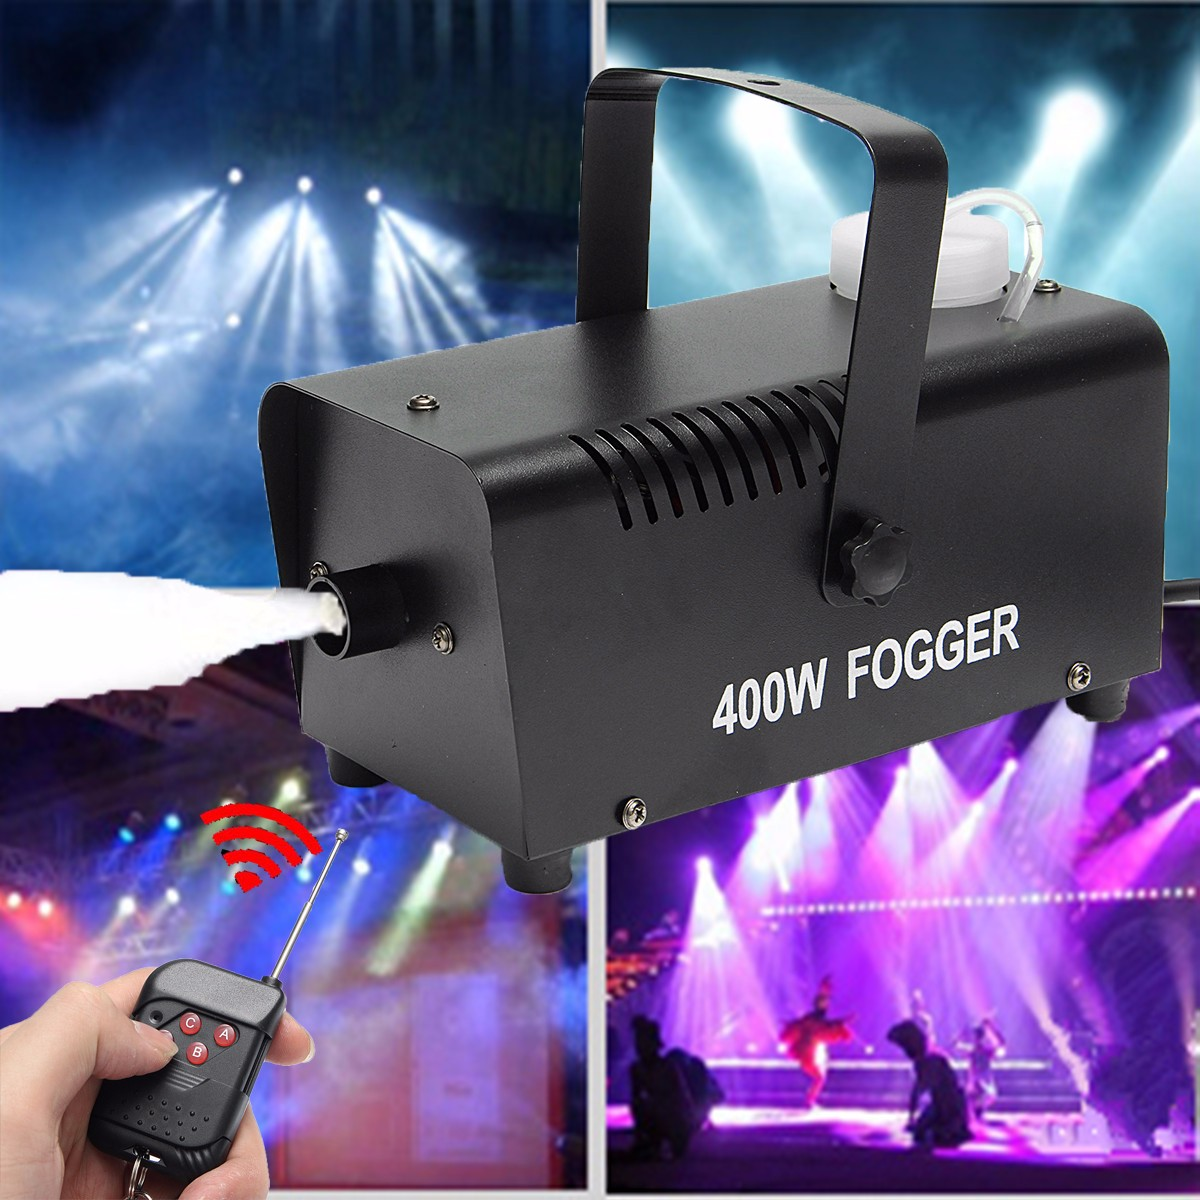 Mini LED RGB Wireless 400W Fog Smoke Mist Machine Stage Effect Disco DJ Party Christmas with Remote Control LED fogger niugul 1500w fog machine smoke machine stage mist effect 110v 240v remote wire control for disco dj party spray up fogger maker